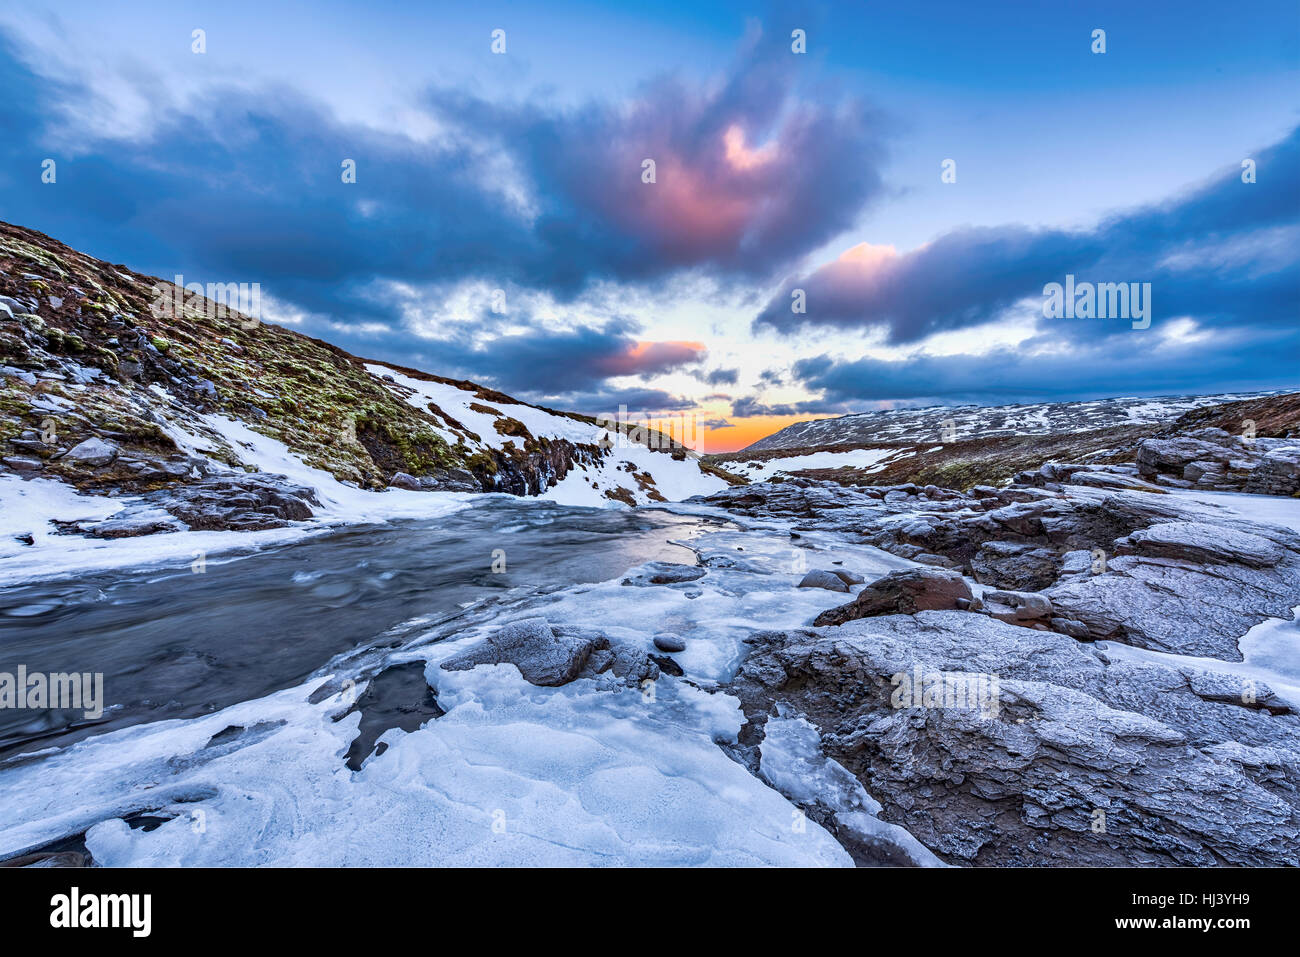 A cold snowy river in the highlands of Iceland framed by pastel skies and rugged terrain offers scenic landscape Stock Photo